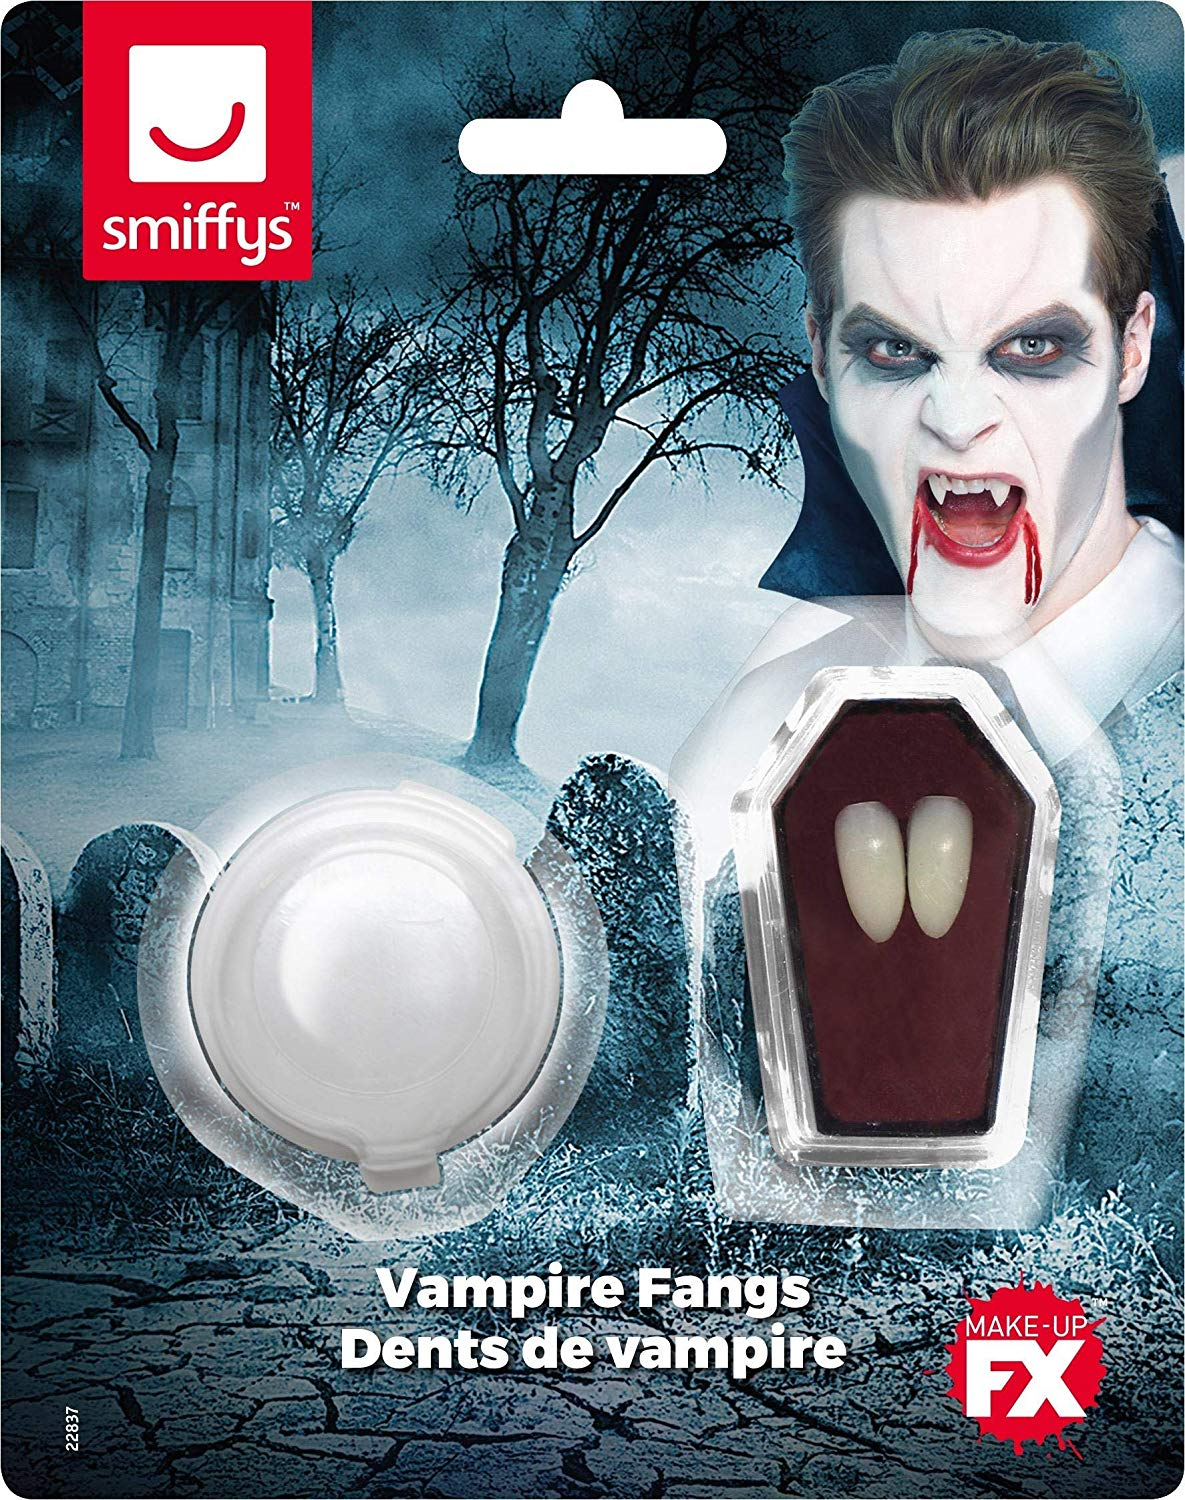 ACCESSORIES/FANGS & TEETH/dracula teeth and adhesive